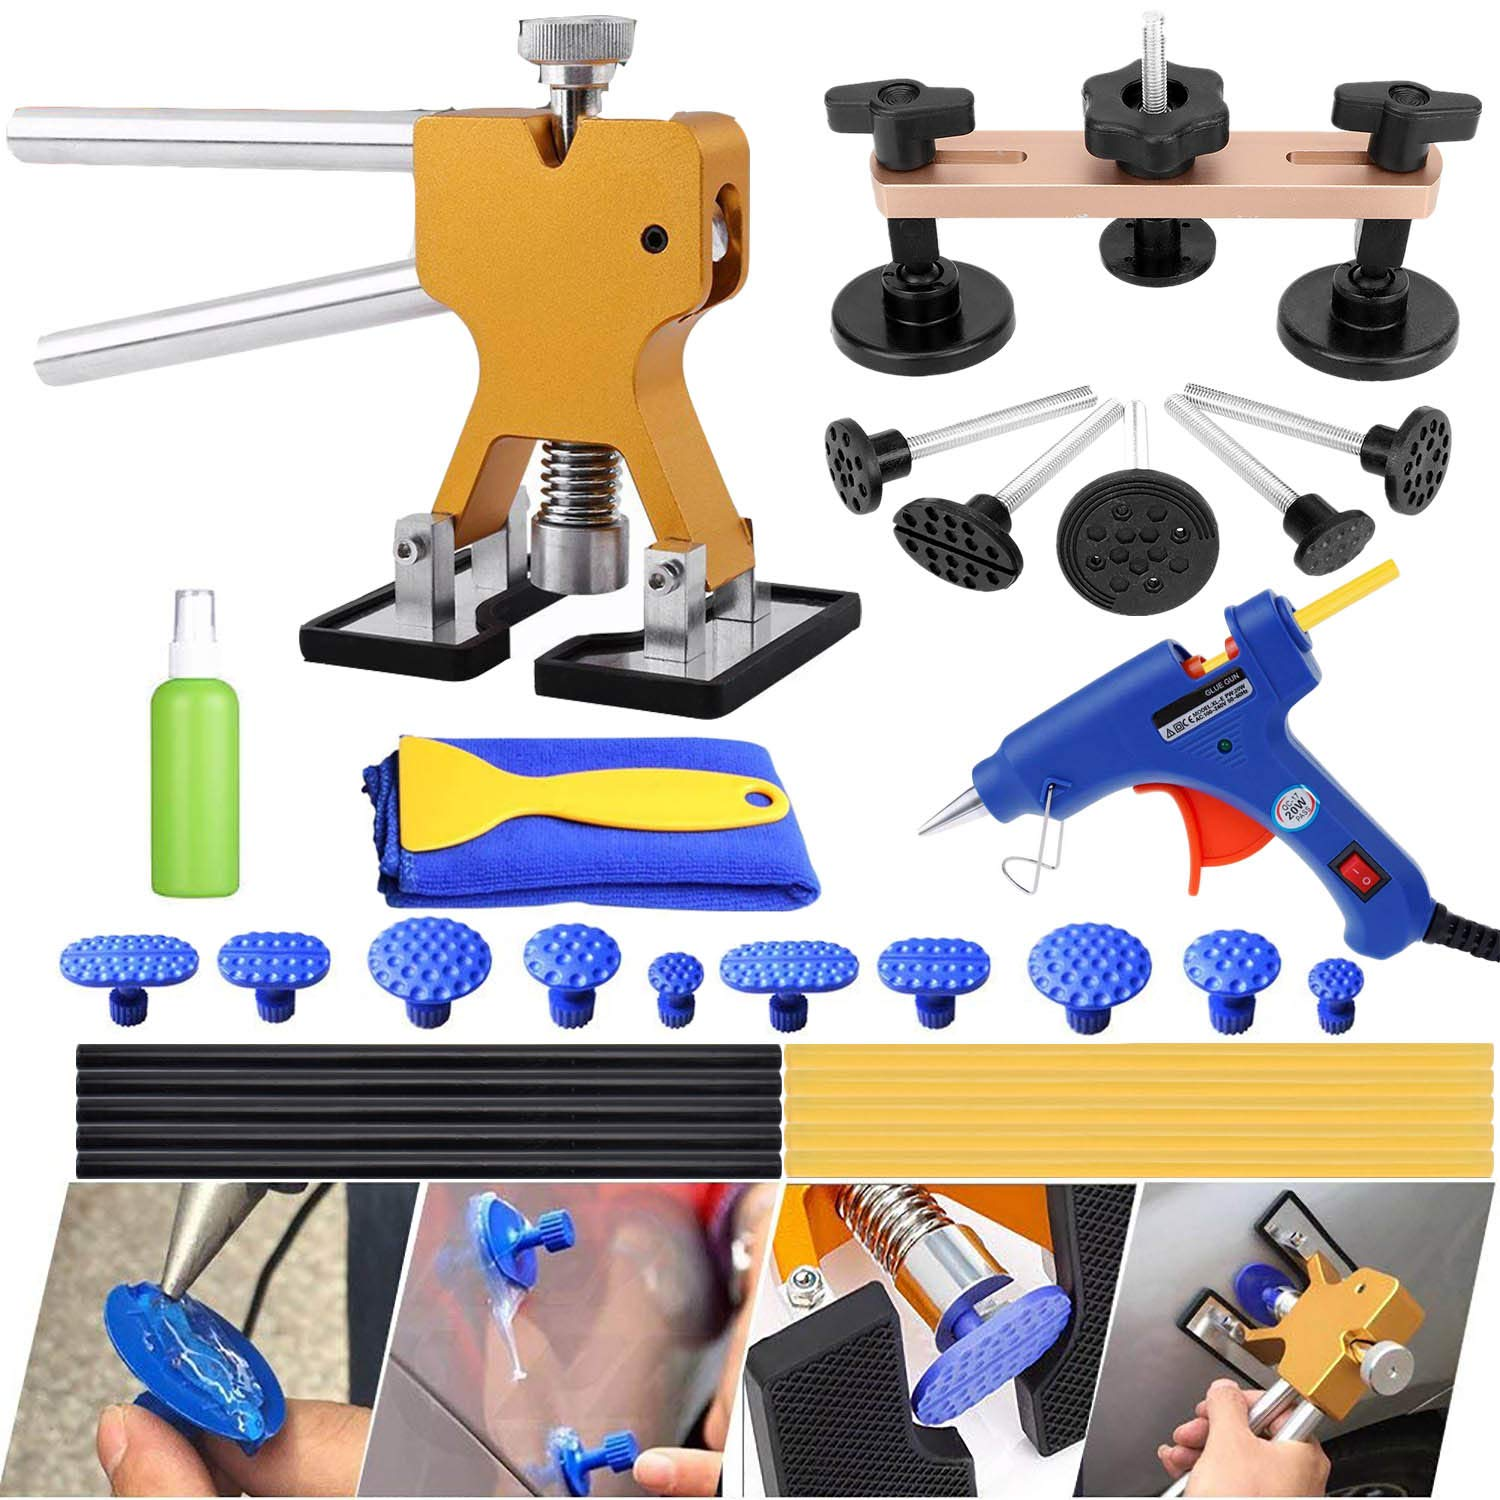 VOLOL SMLIFE Auto Body Paintless Dent Removal Repair Kits Pops a Dent Puller Bridge Remover Tools for Car Hail Damage and Door Dings